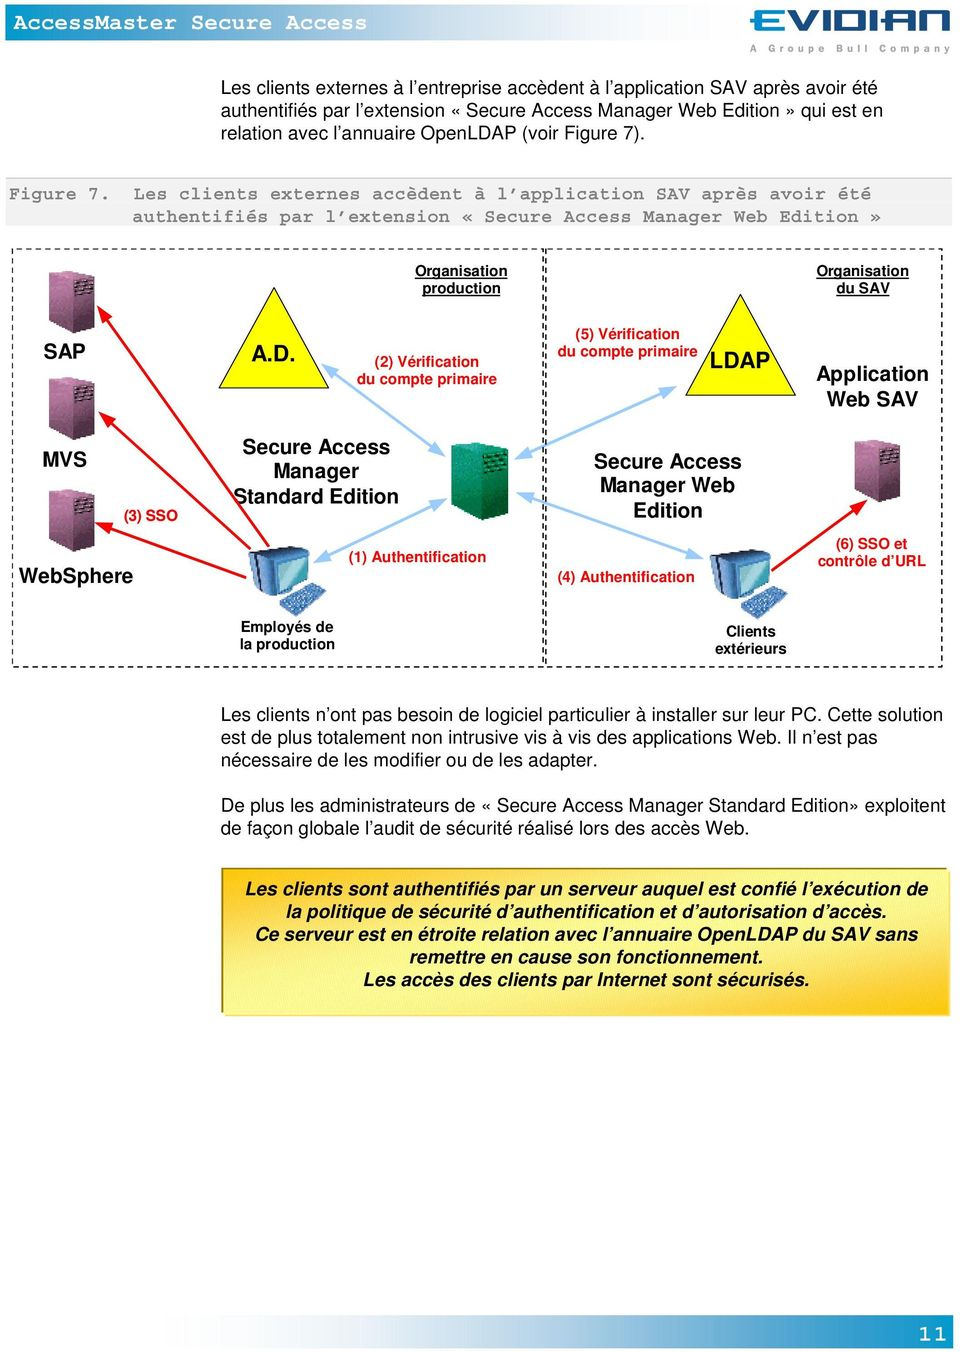 (2) Vérification du compte primaire (5) Vérification du compte primaire LDAP Application Web SAV MVS (3) SSO Secure Access Manager Standard Edition Secure Access Manager Web Edition WebSphere (1)